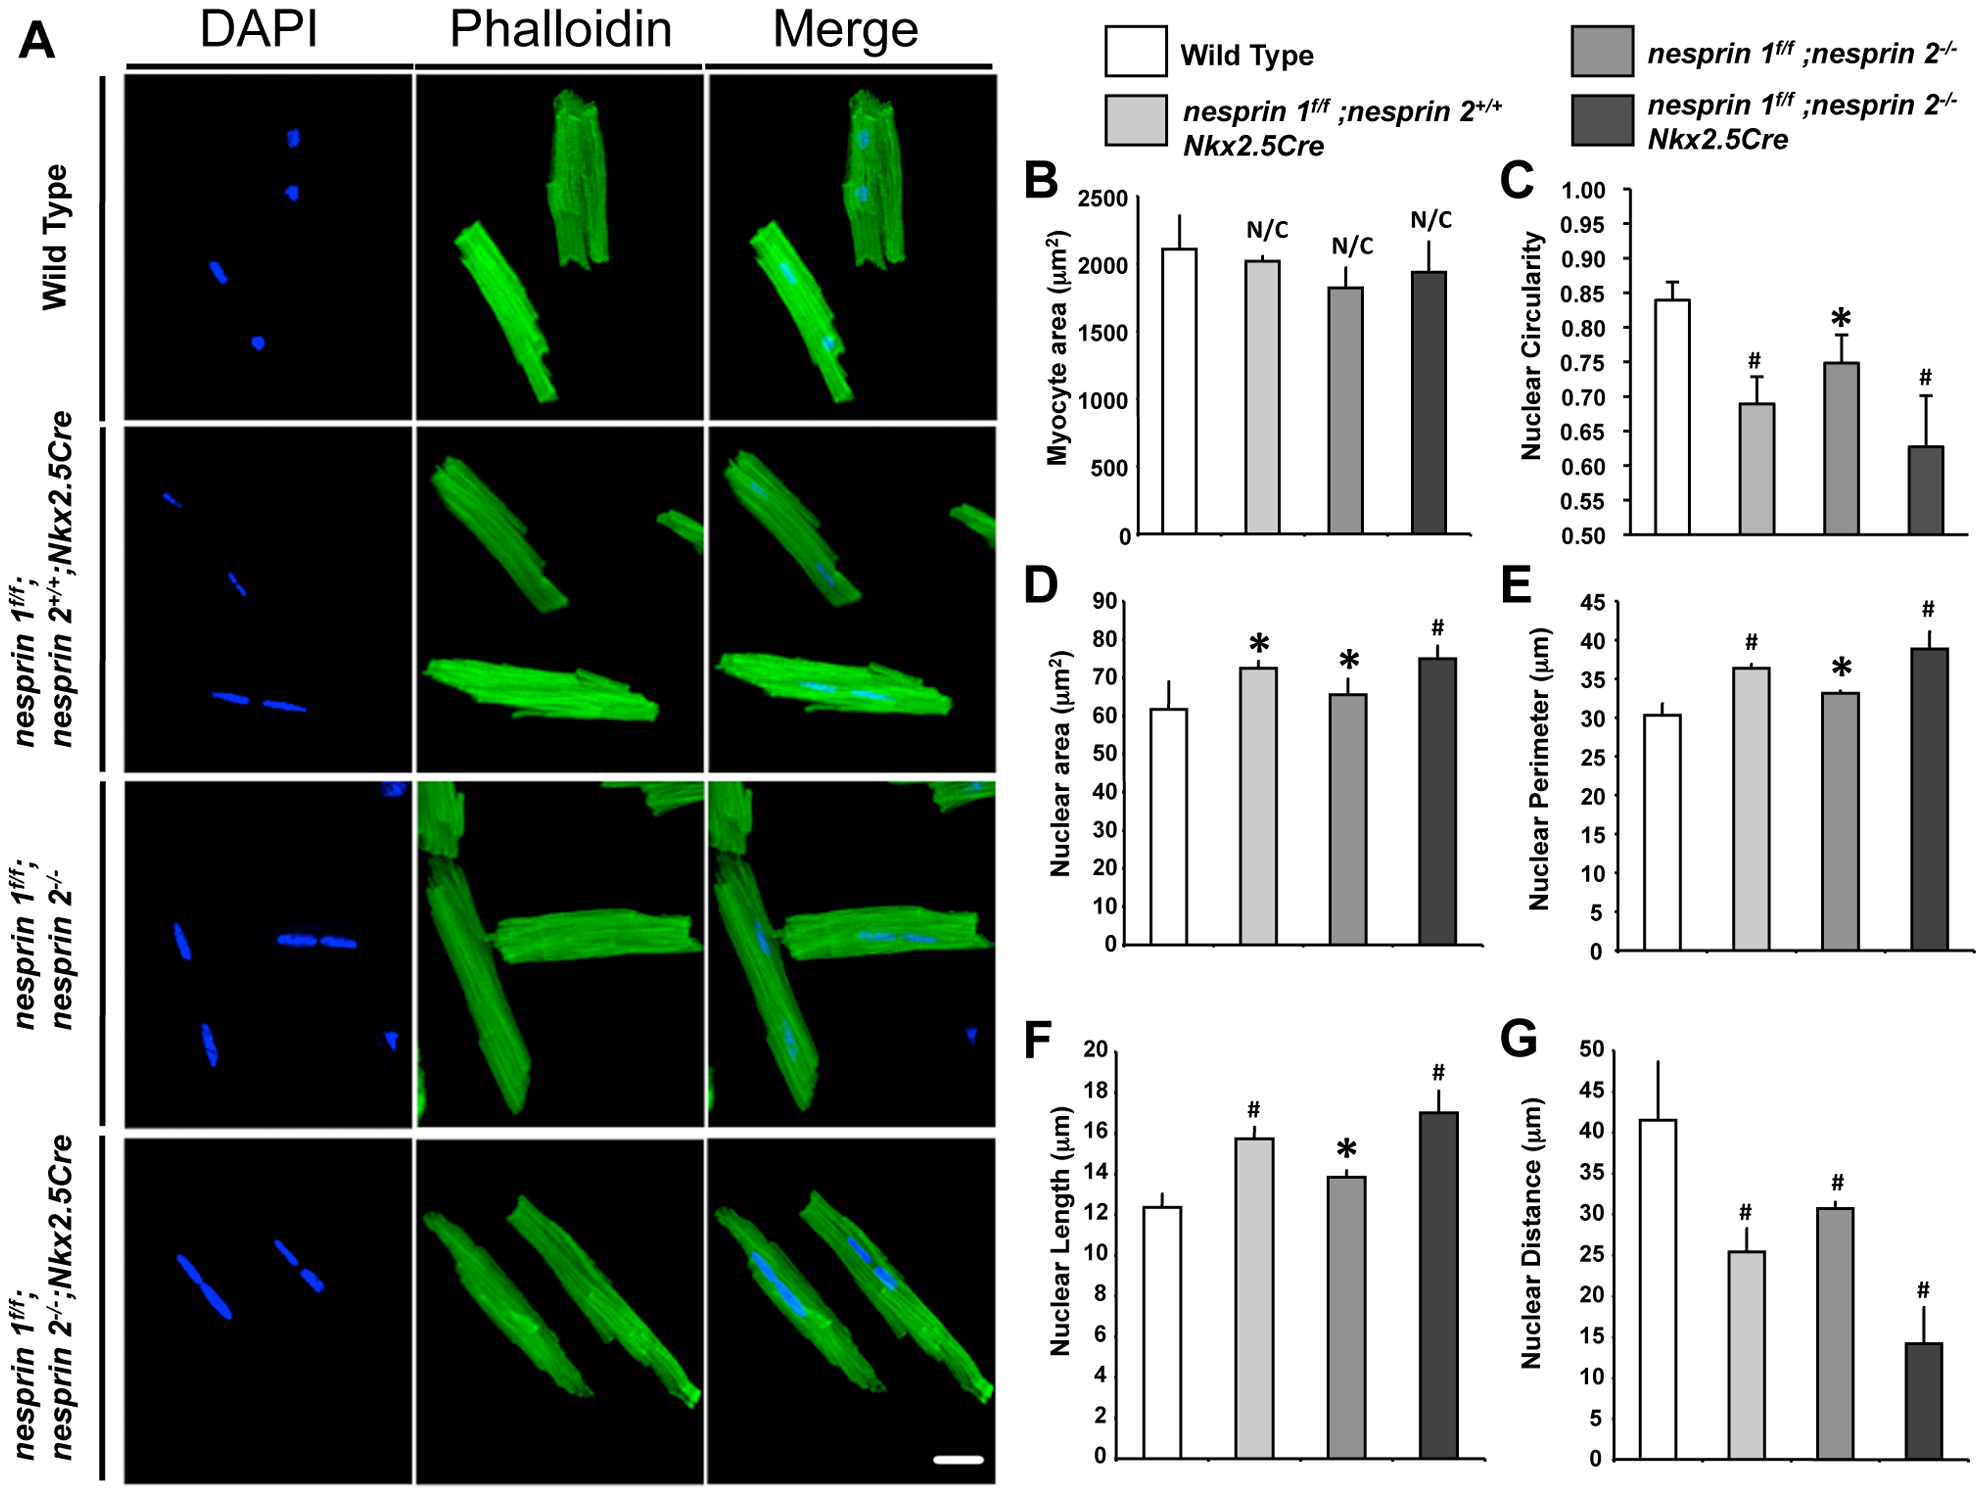 Cardiomyocyte nuclear morphology is altered in response to loss of Nesprin 1 and/or 2.